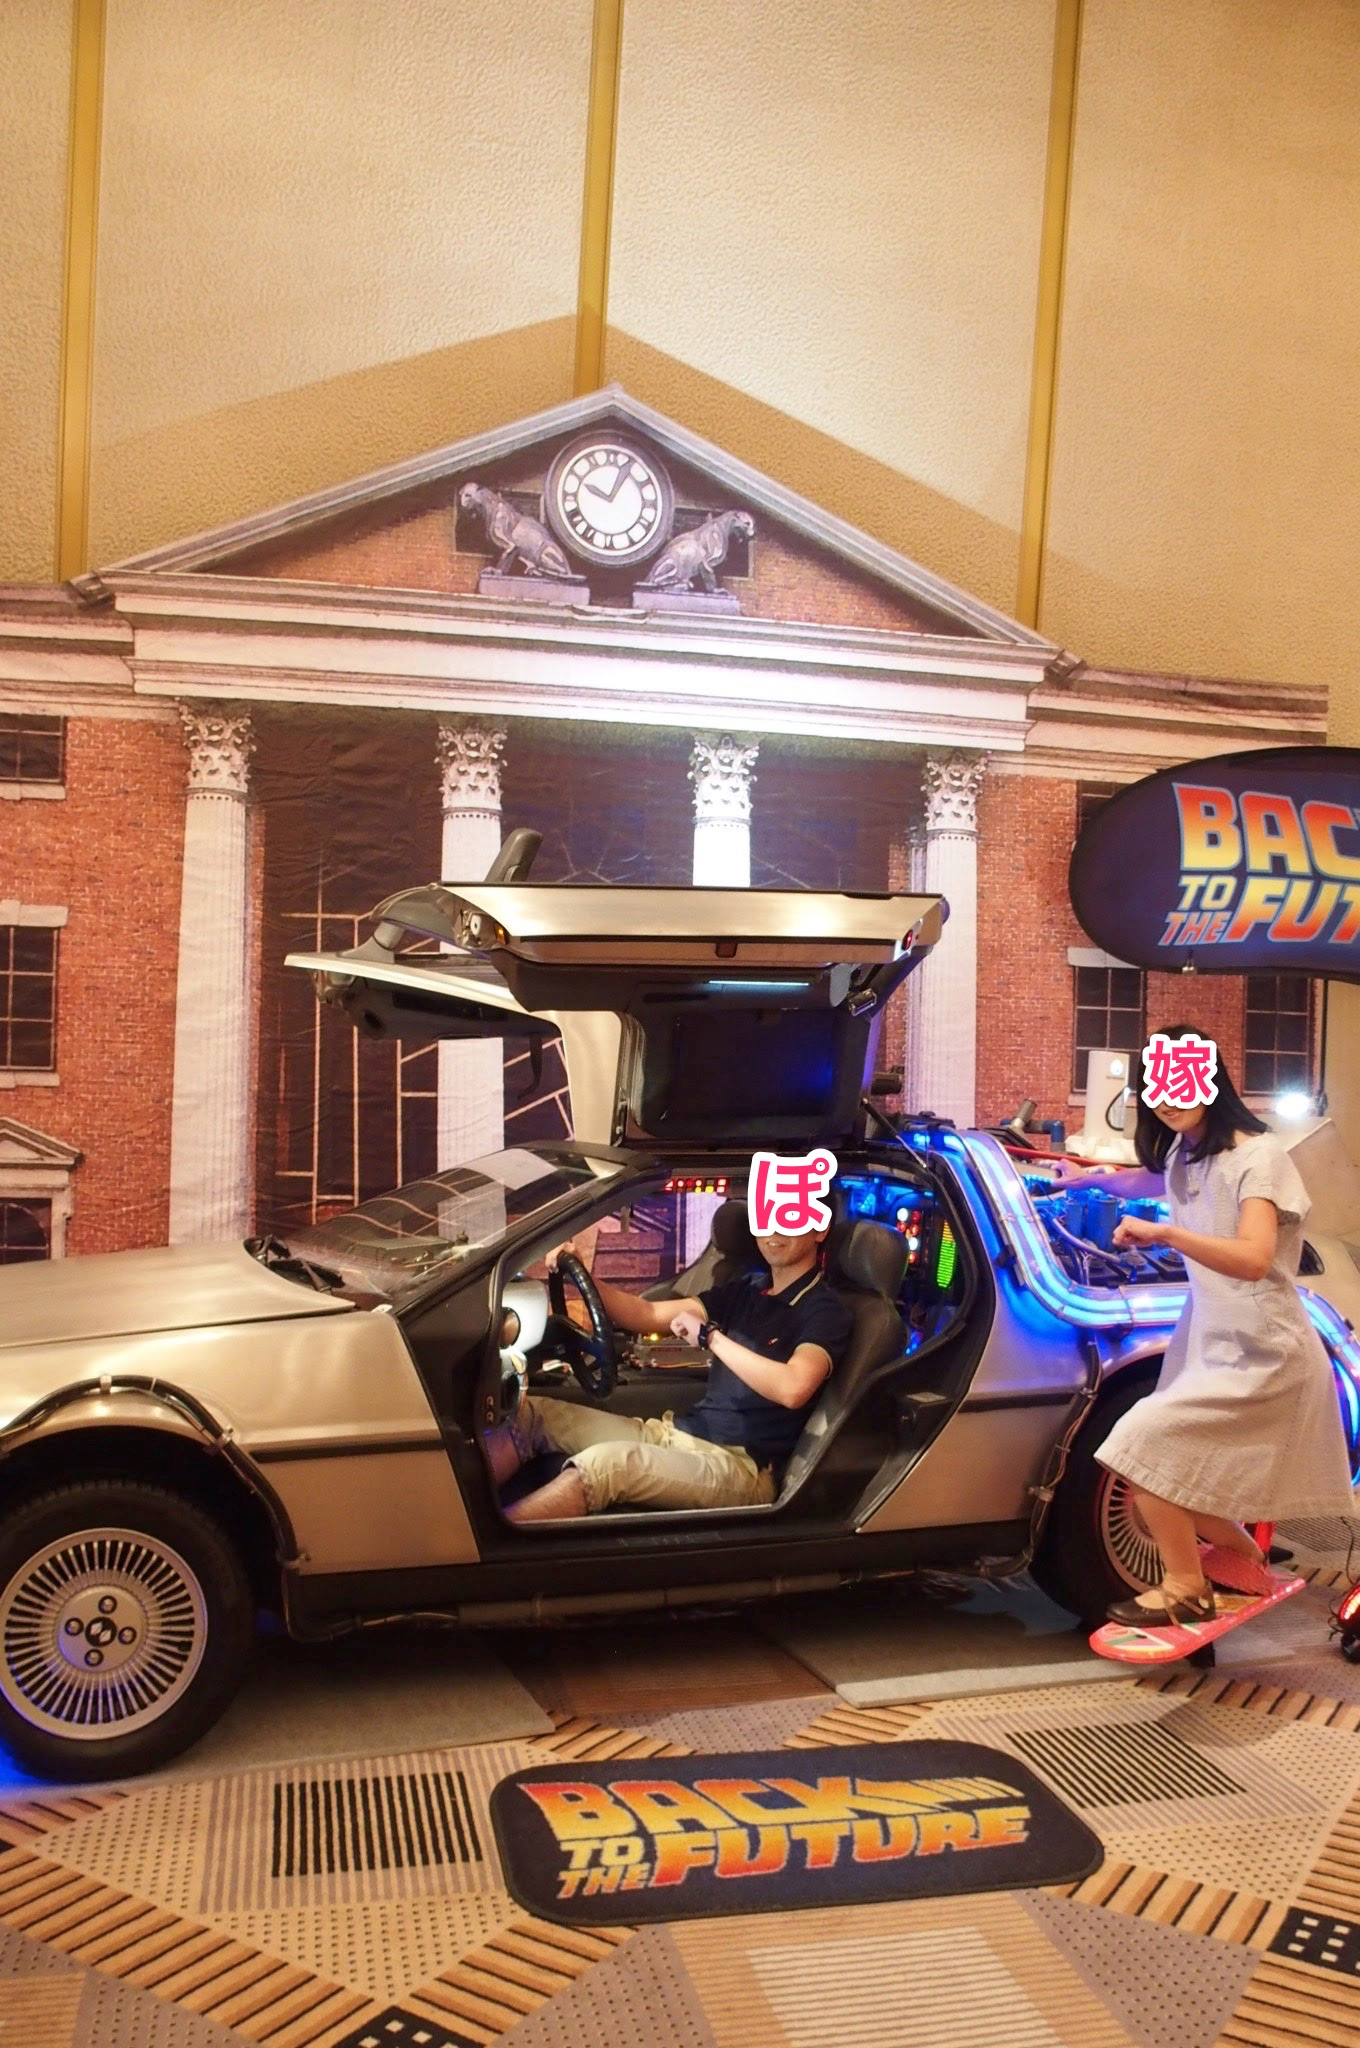 [Back to the Future 30 Anniversary] I have met real Doc, Jennifer and DeLorean!